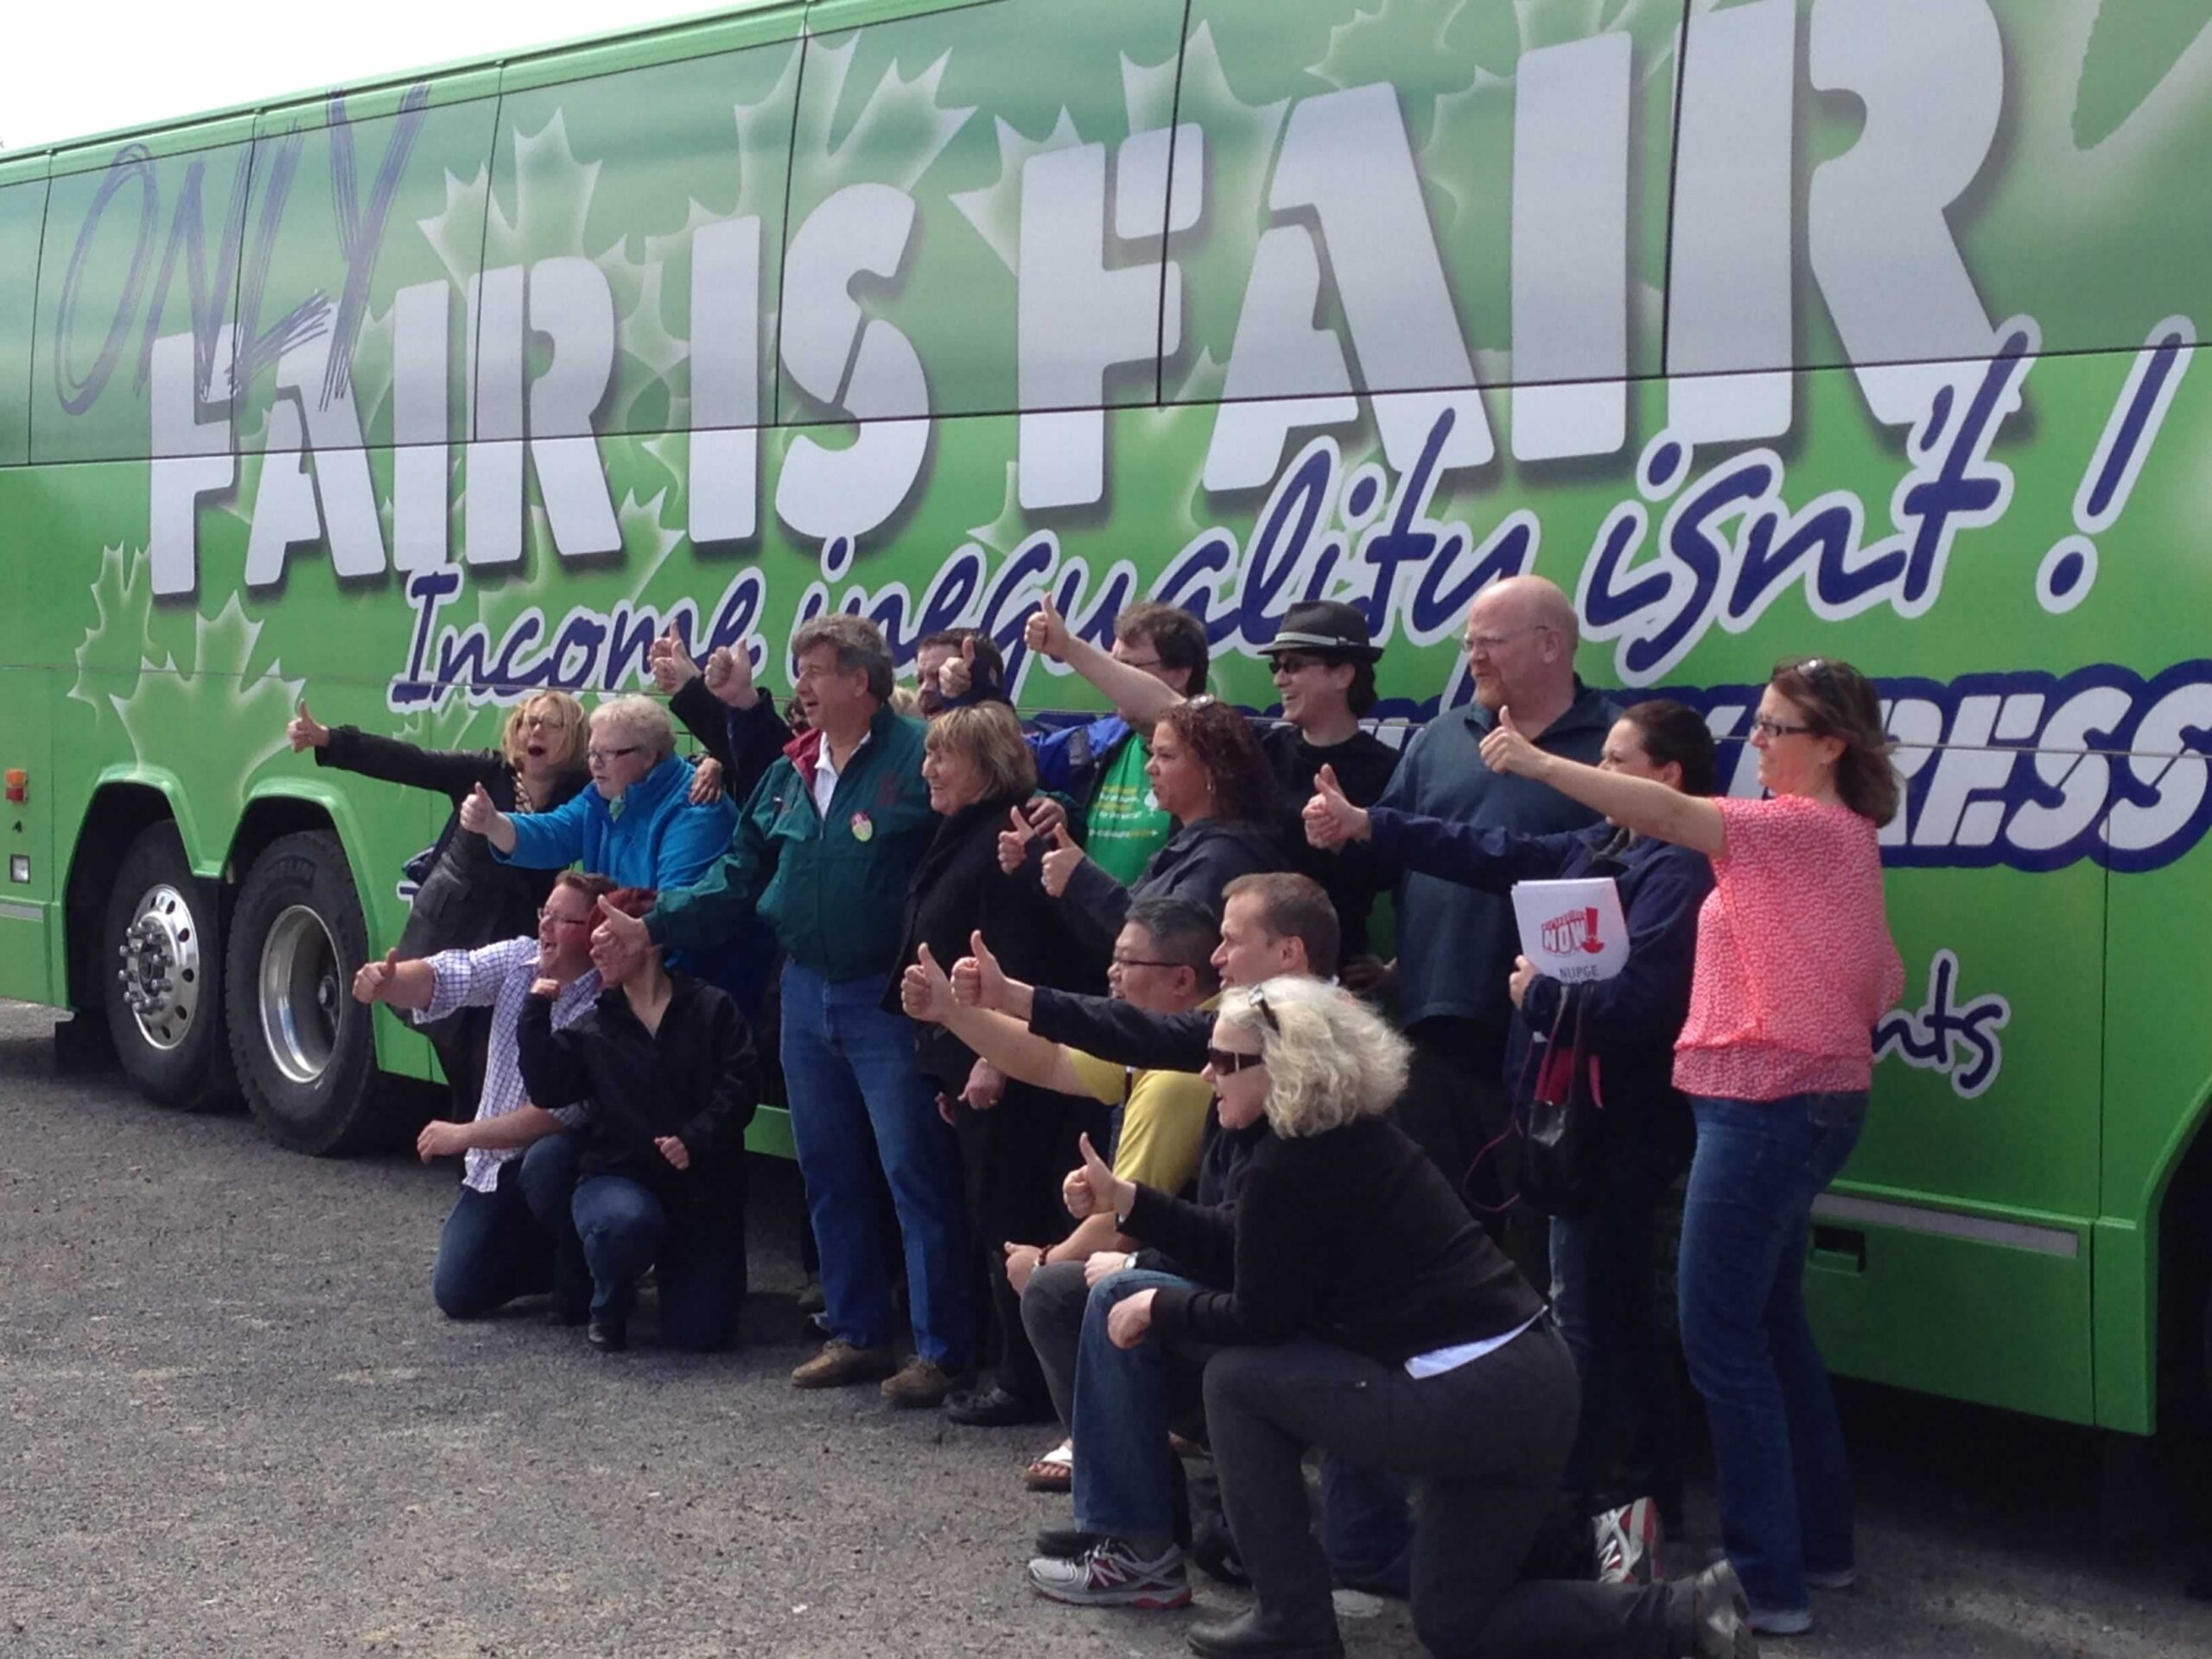 OPSEU members posing in front of a bus that says: Only fair is fair!